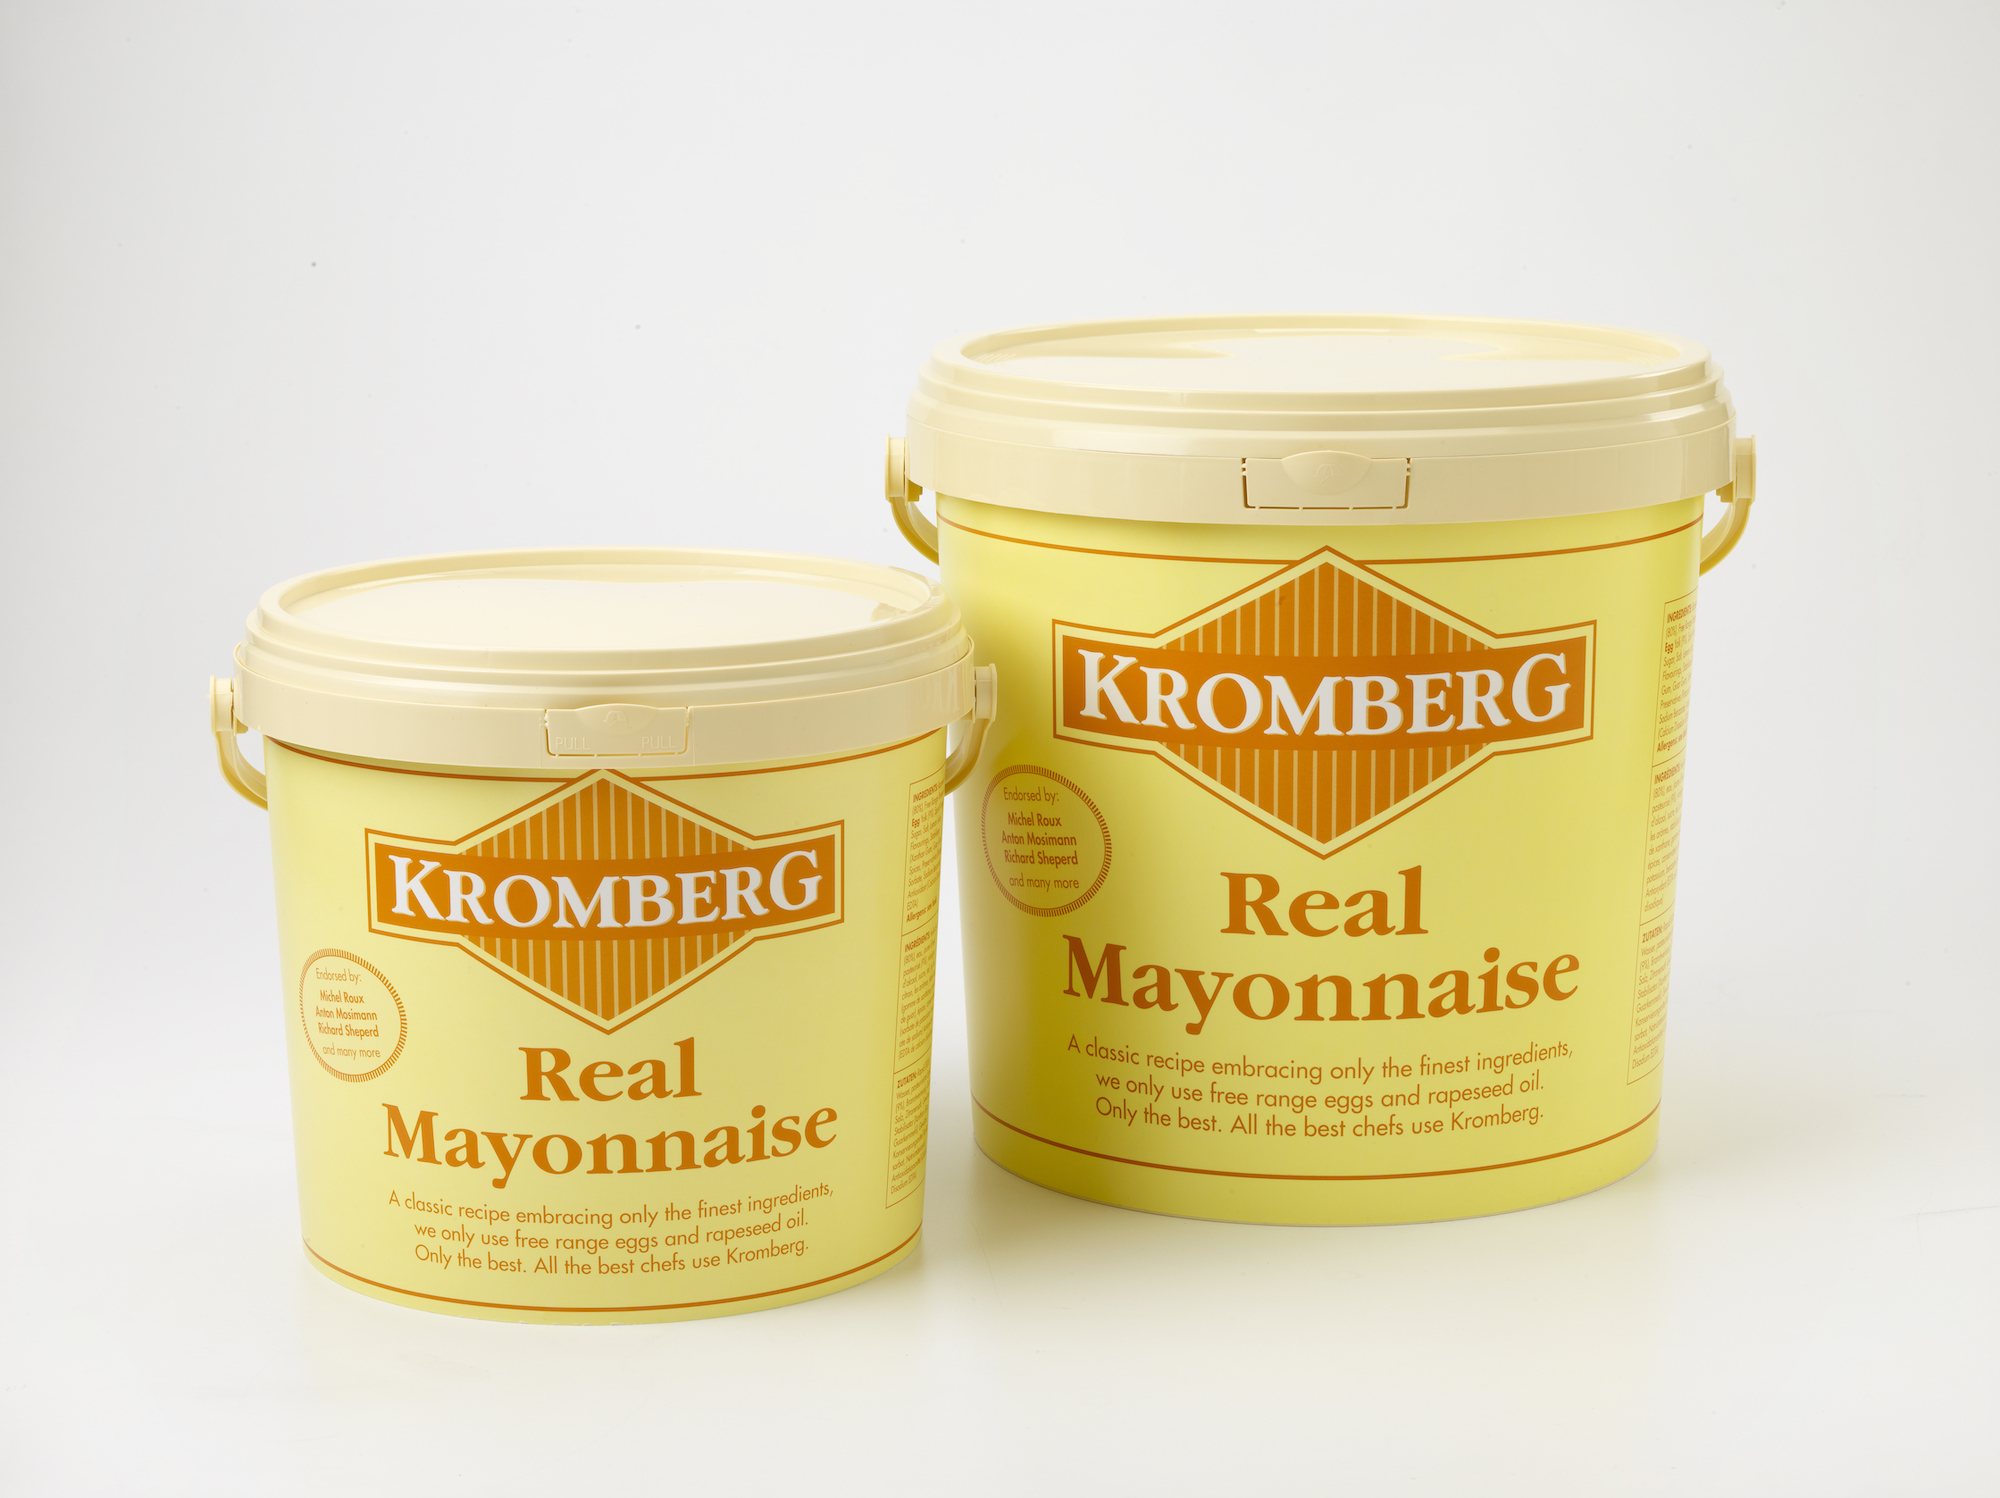 10_Kromberg_Mayonnaise_New